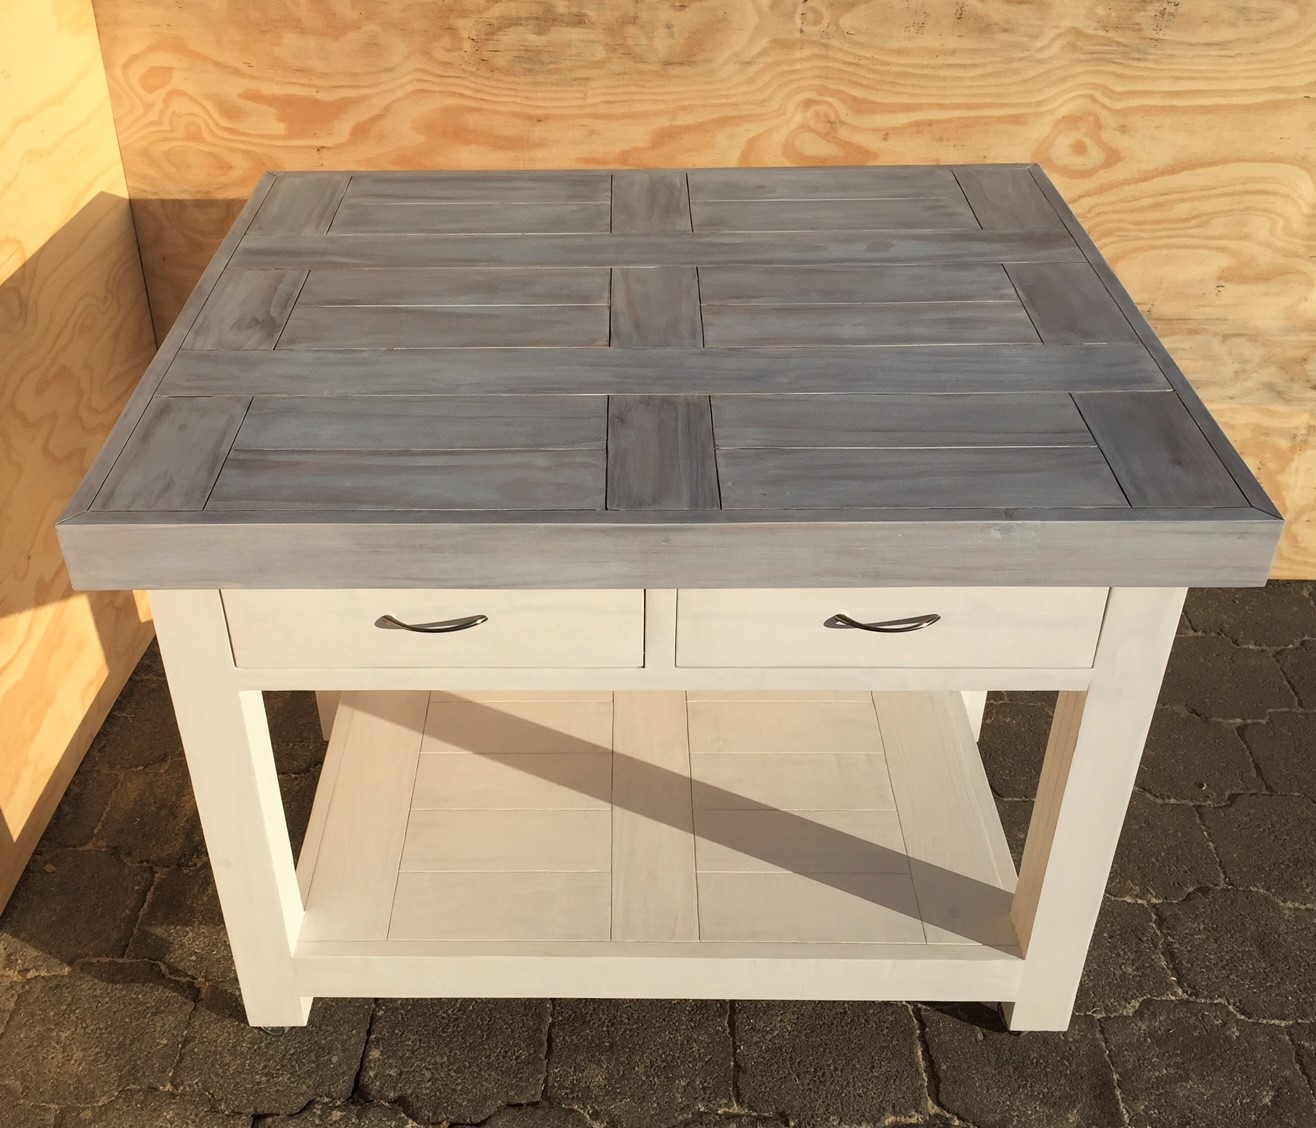 Kitchen Island Farmhouse series 1180 with 2 drawers mobile Version 2 - Two tone